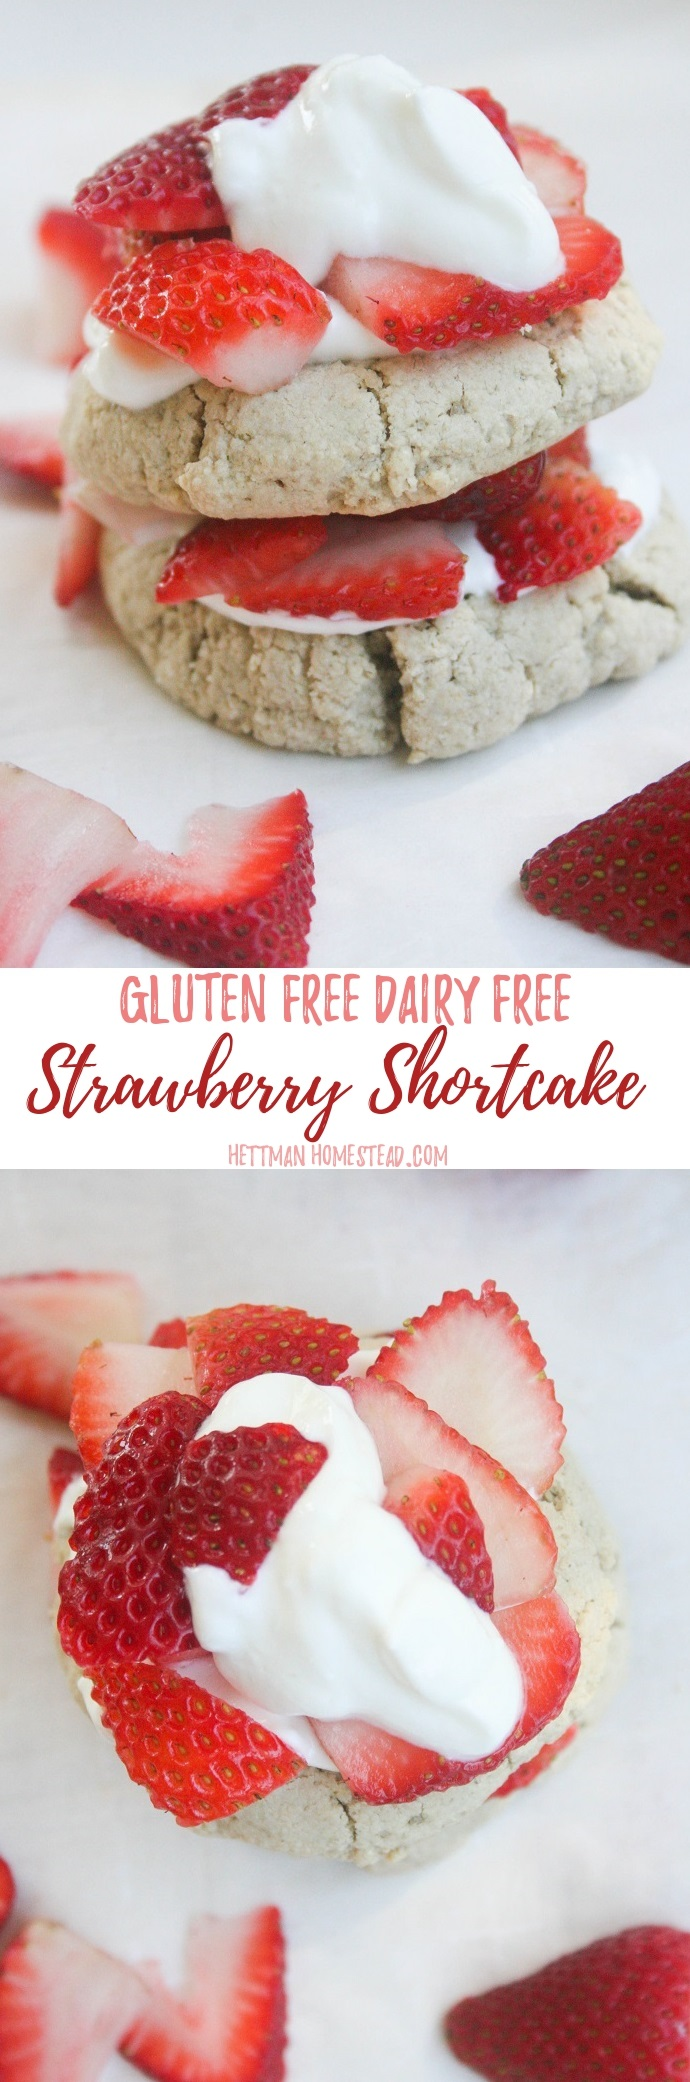 Strawberry Shortcake #GlutenFree #DairyFree -Hettmanhomestead.com